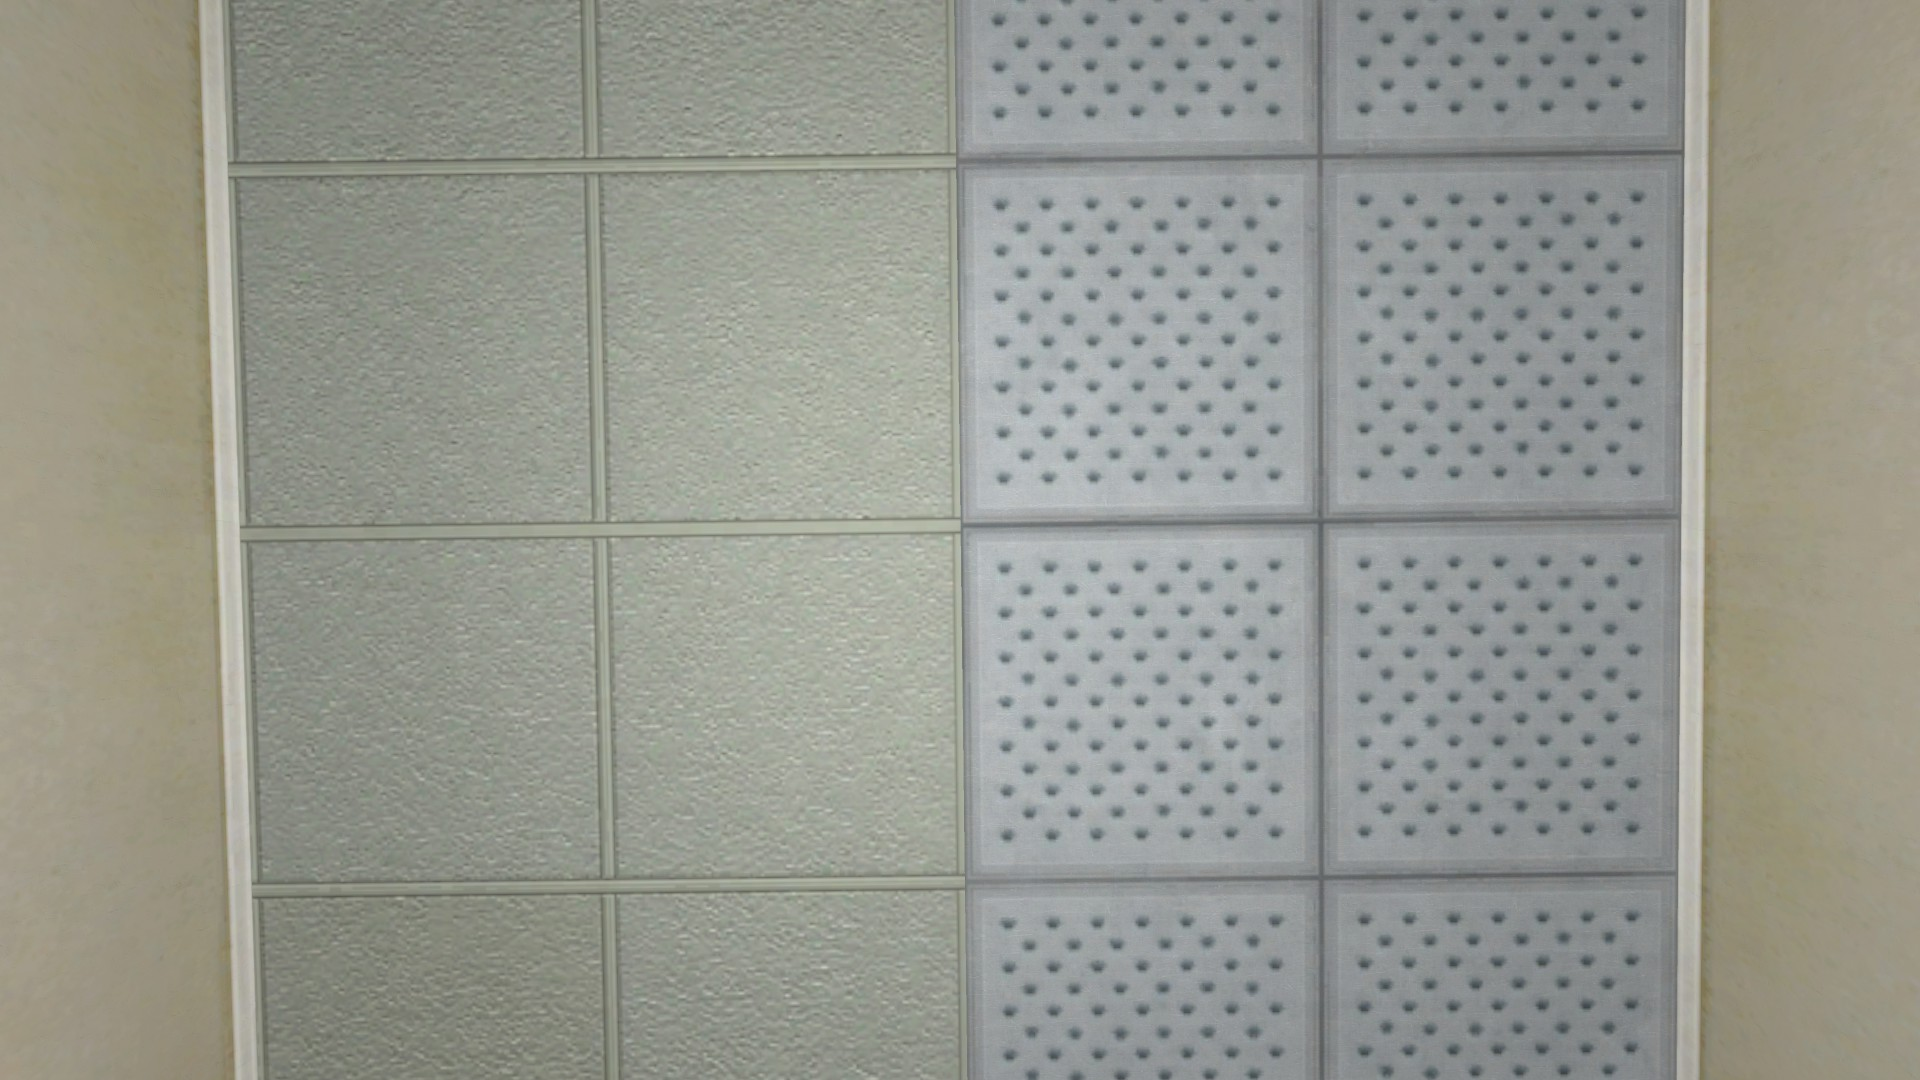 The problem of lighting in office complex leak free black actual ceiling tiles even ones that have been around for a while and accumulated some dirt just arent that color dailygadgetfo Image collections